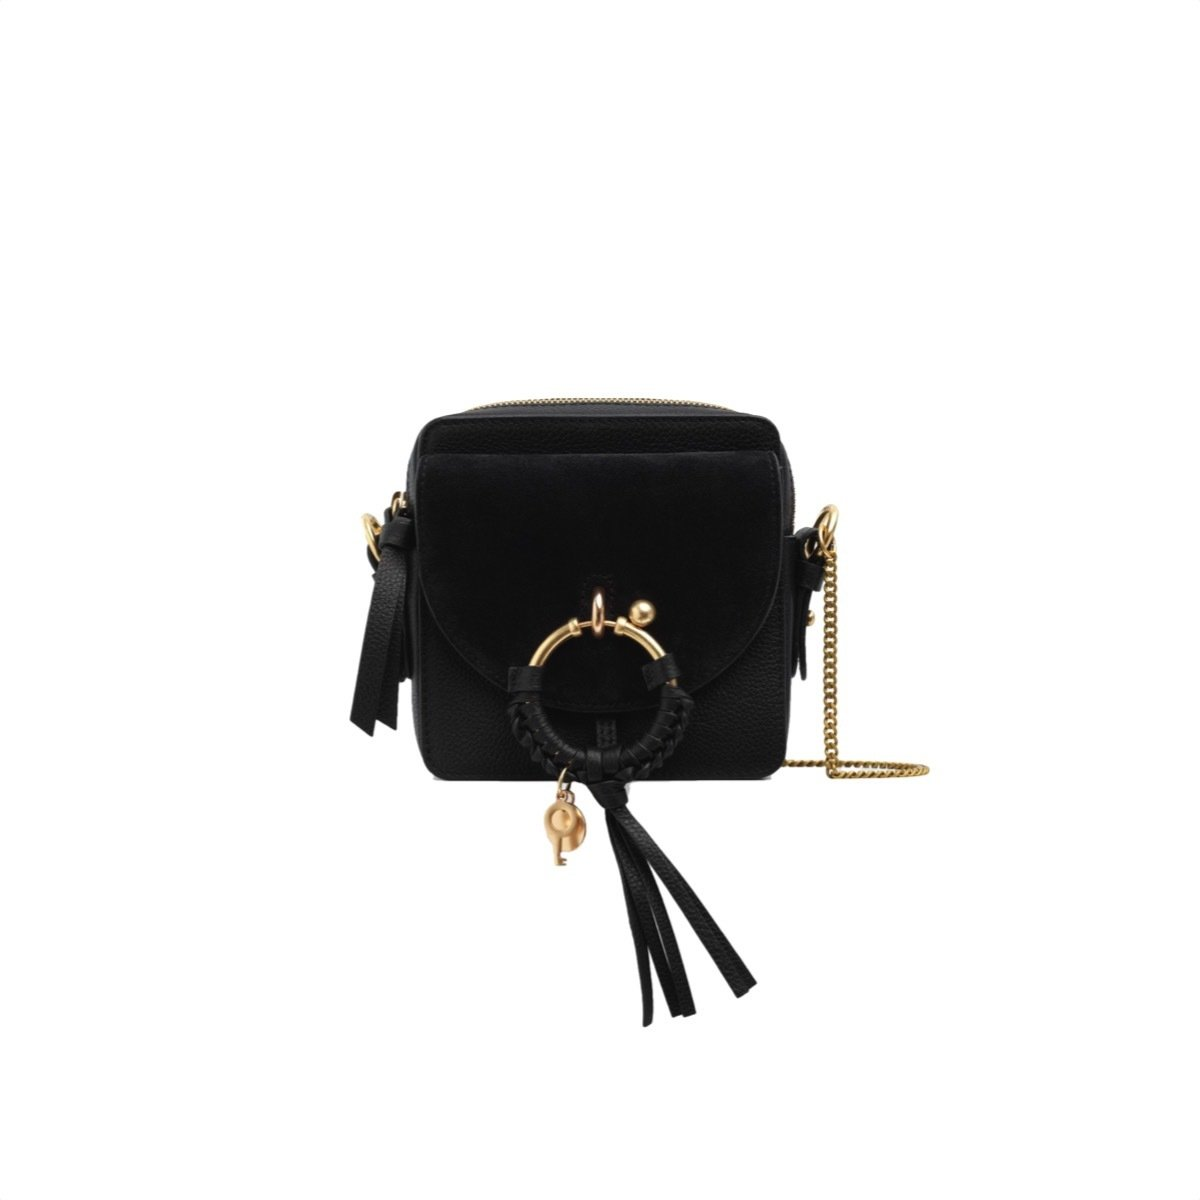 SEE BY CHLOÉ - Joan Mini Crossbody Bag - Black